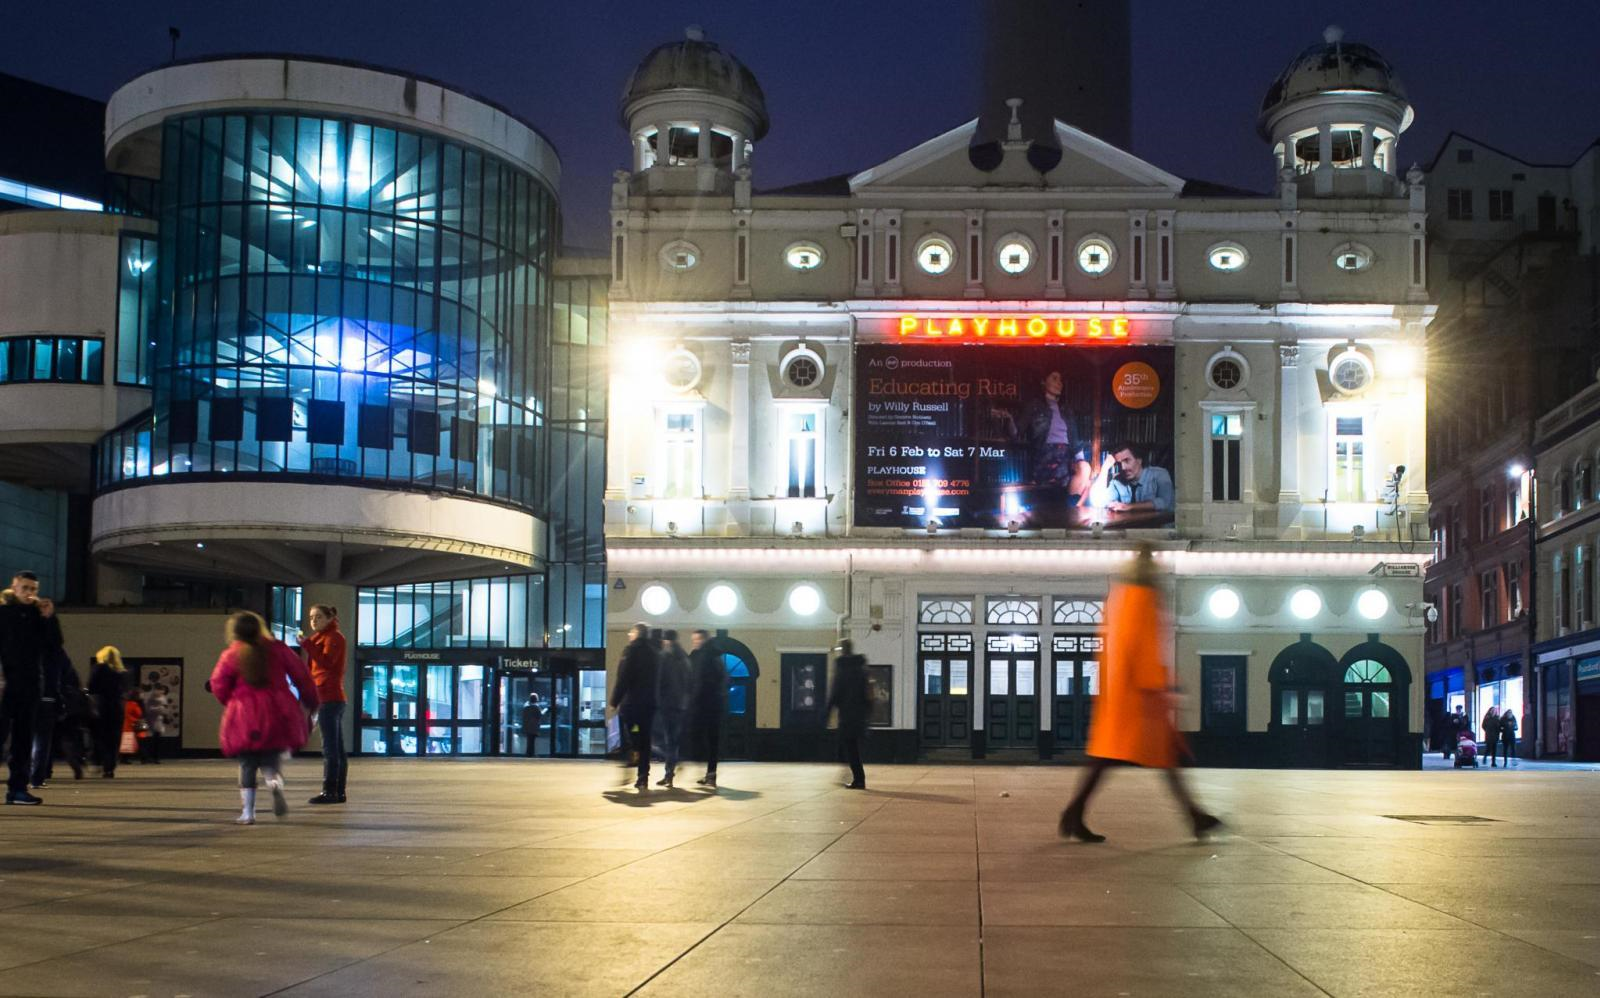 Brilliant musicals, gripping plays and exciting one night shows announced for the Everyman & Playhouse's autumn winter 2019/20 season